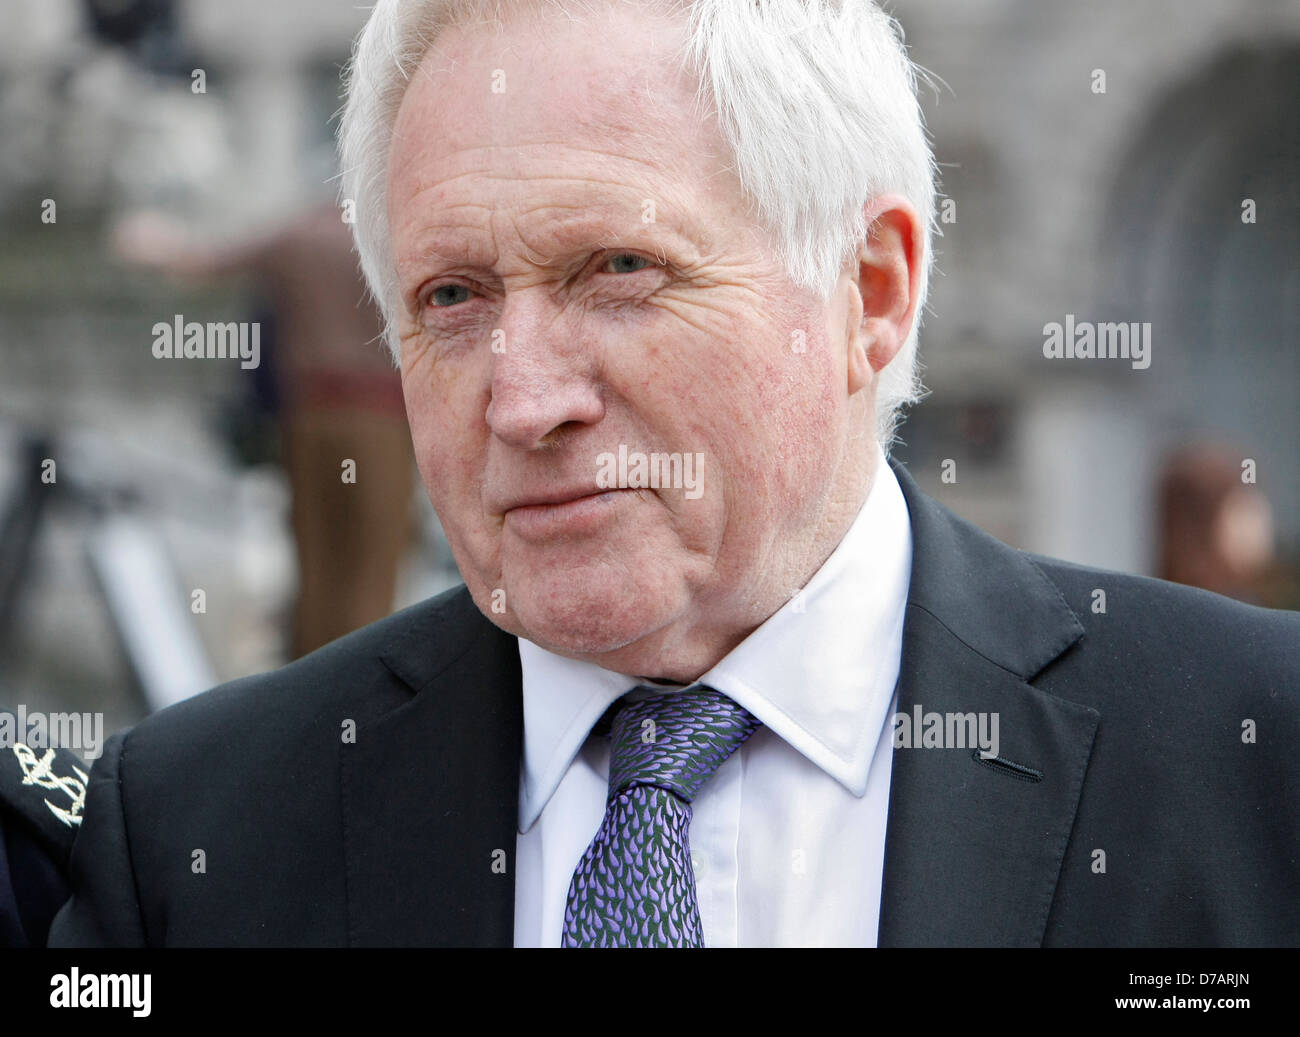 jounalist and broadcaster david dimbleby meets member of the armed services the day before margaret thatcher funeral - Stock Image